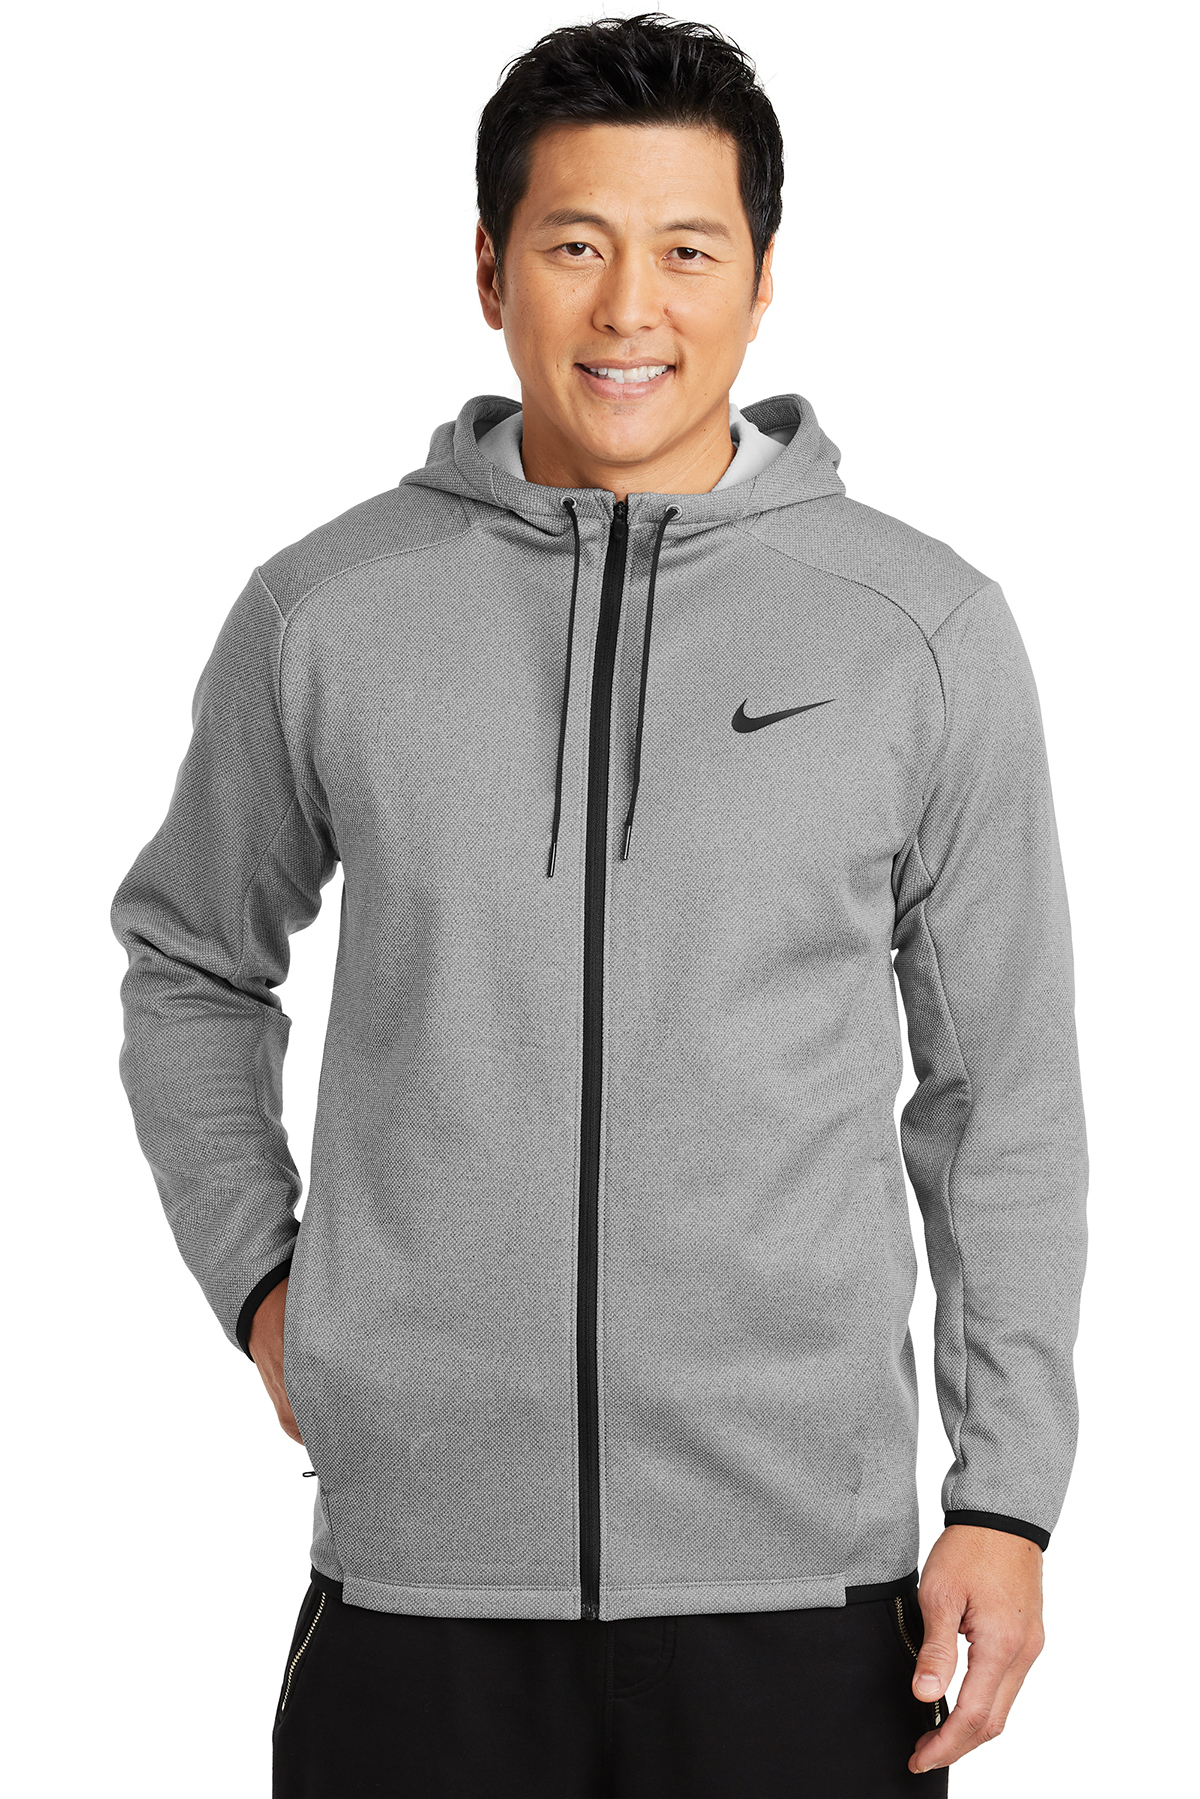 Nike Golf NKAH6268 - Nike Therma-FIT Textured Fleece ...